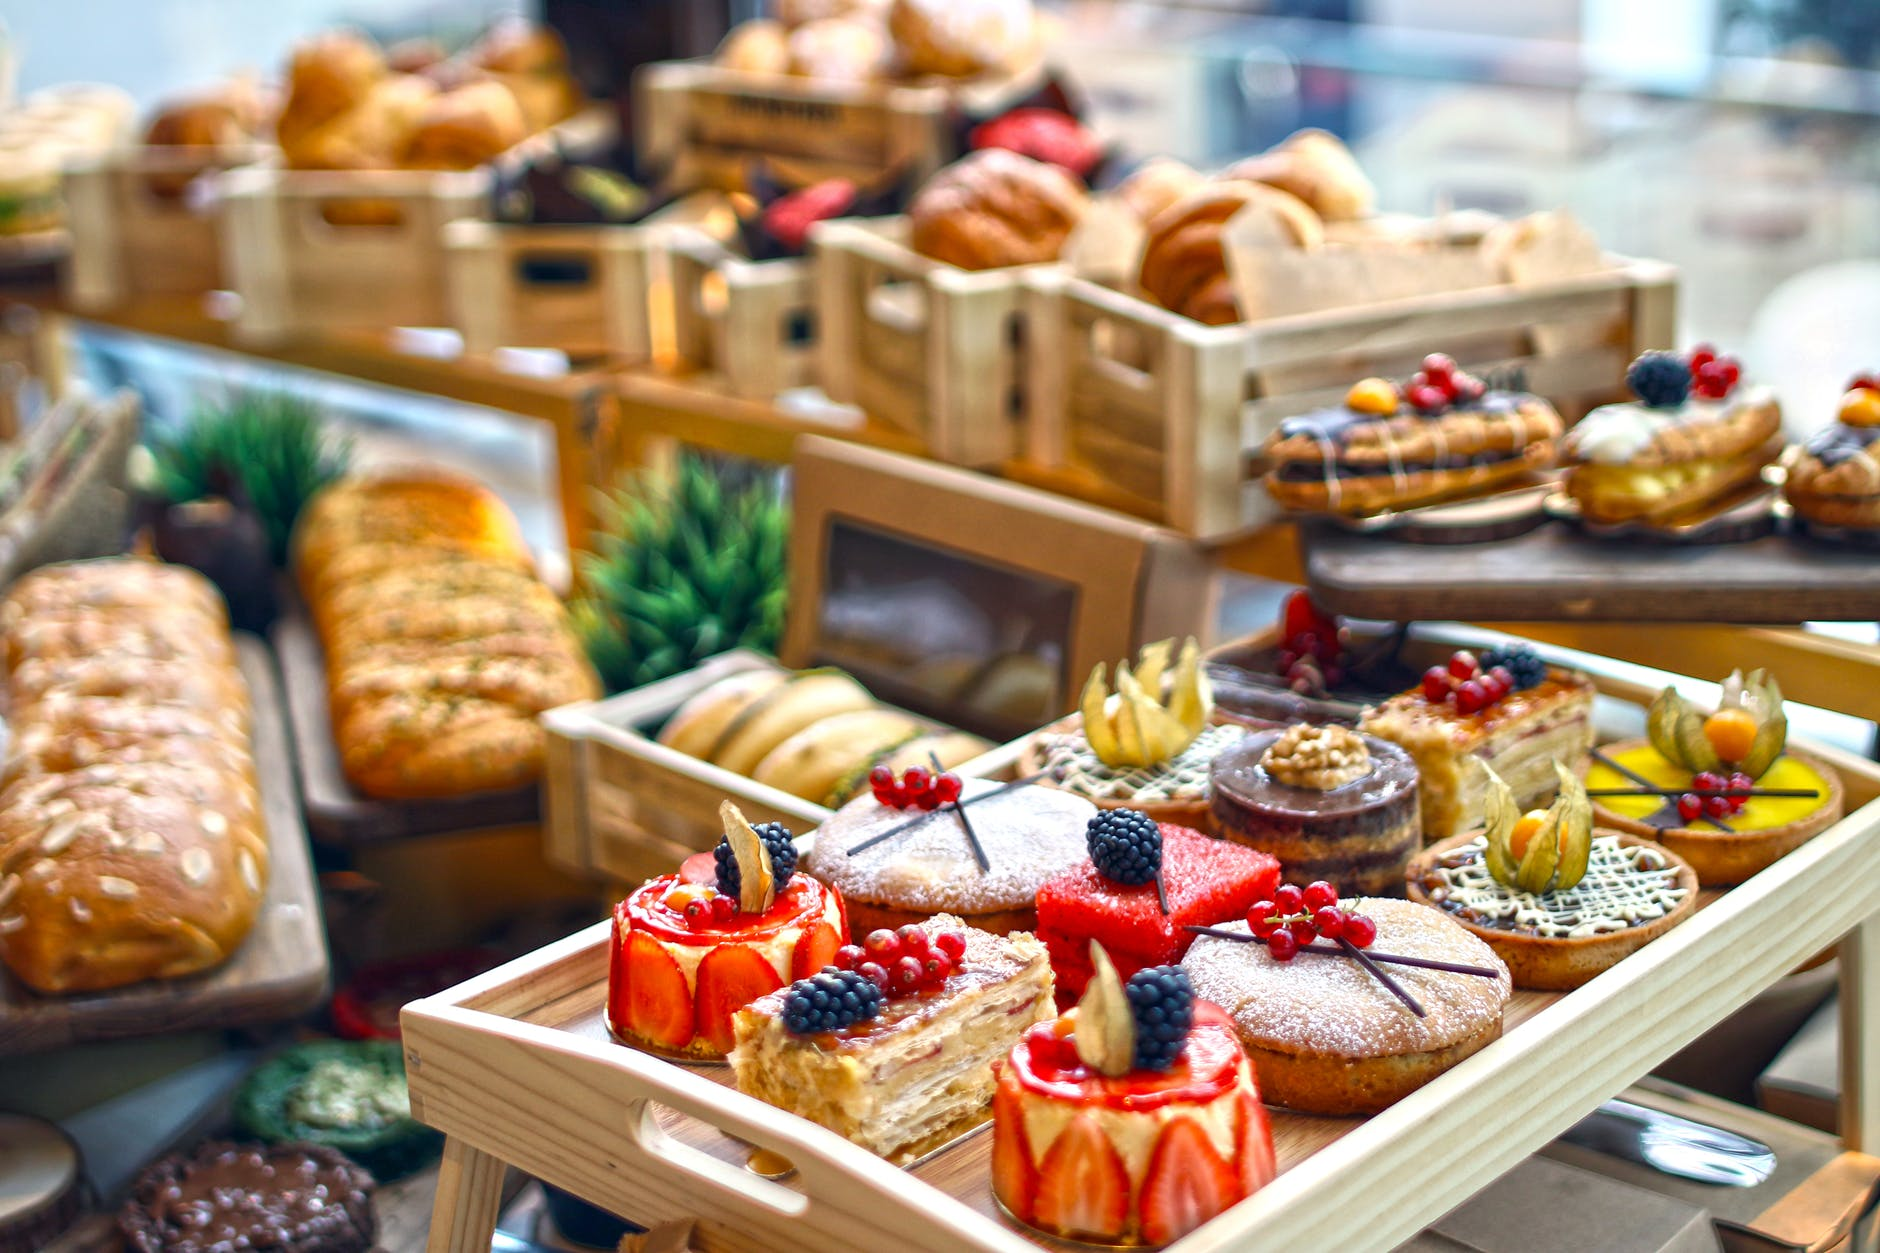 All Things Bread and Pastry! - Top 10 Bakeries in Selangor